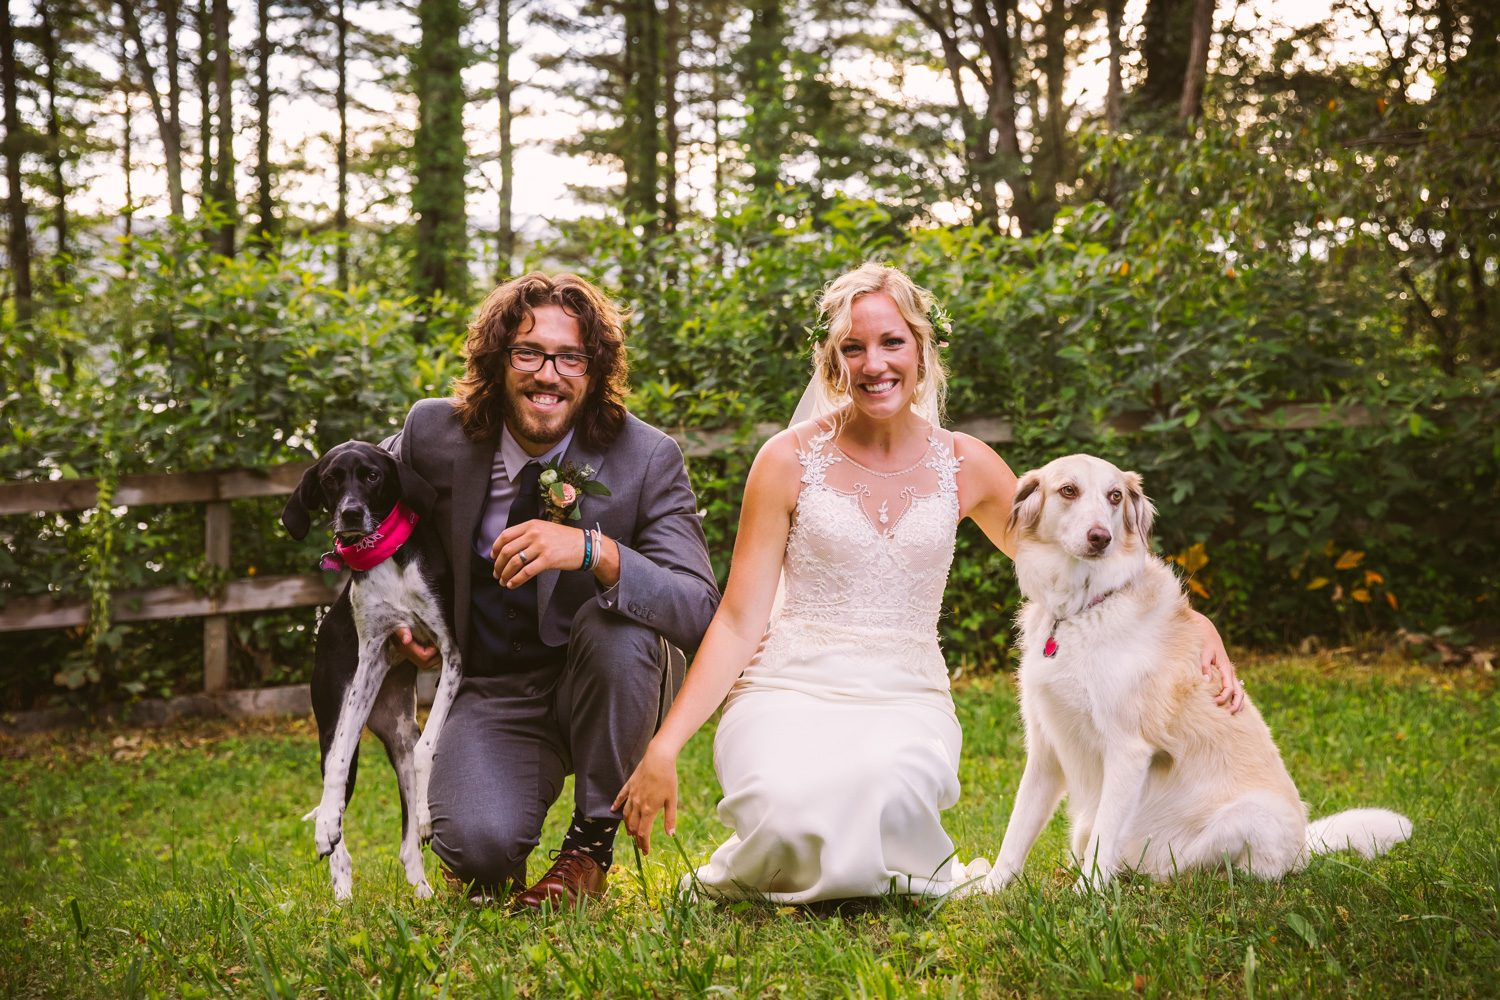 Bride and Groom with Dogs Sawyer Family Farmstead Cashiers NC Wedding Photographers